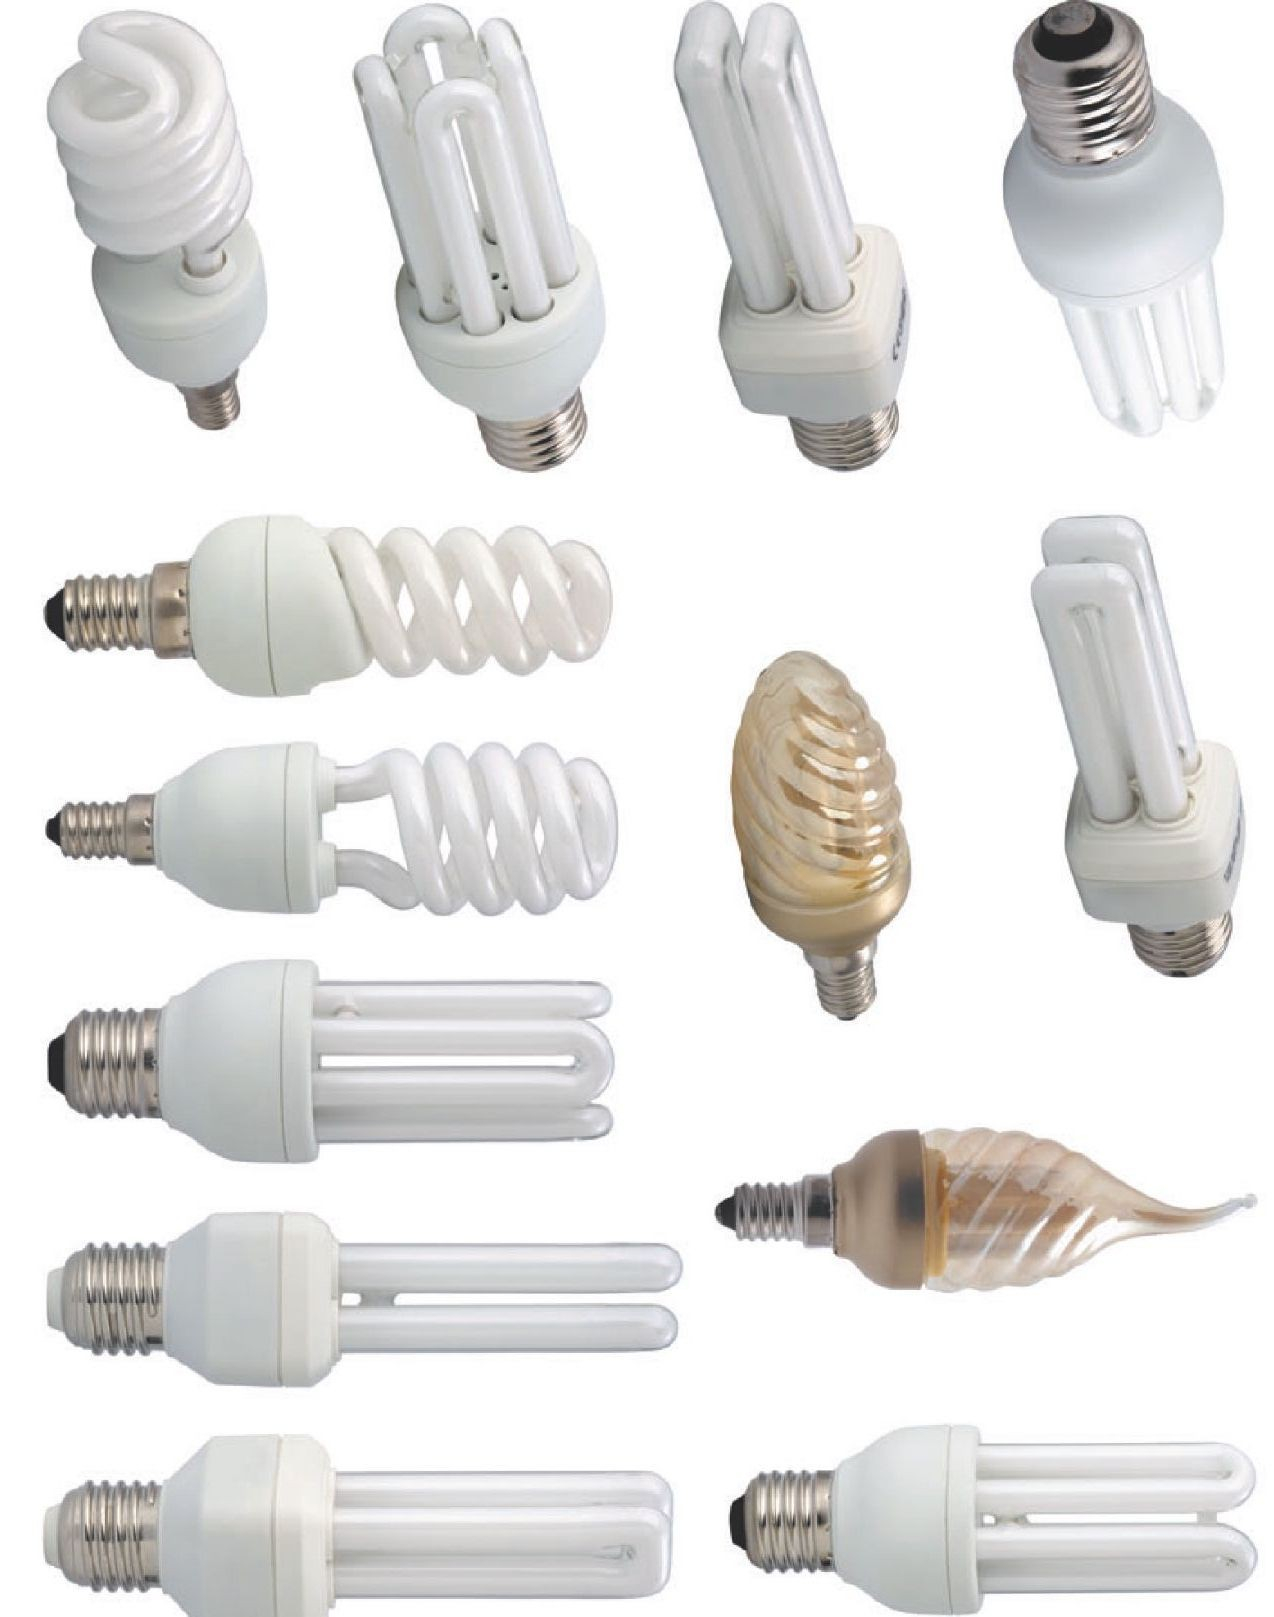 What Type of Bulb You Choose?